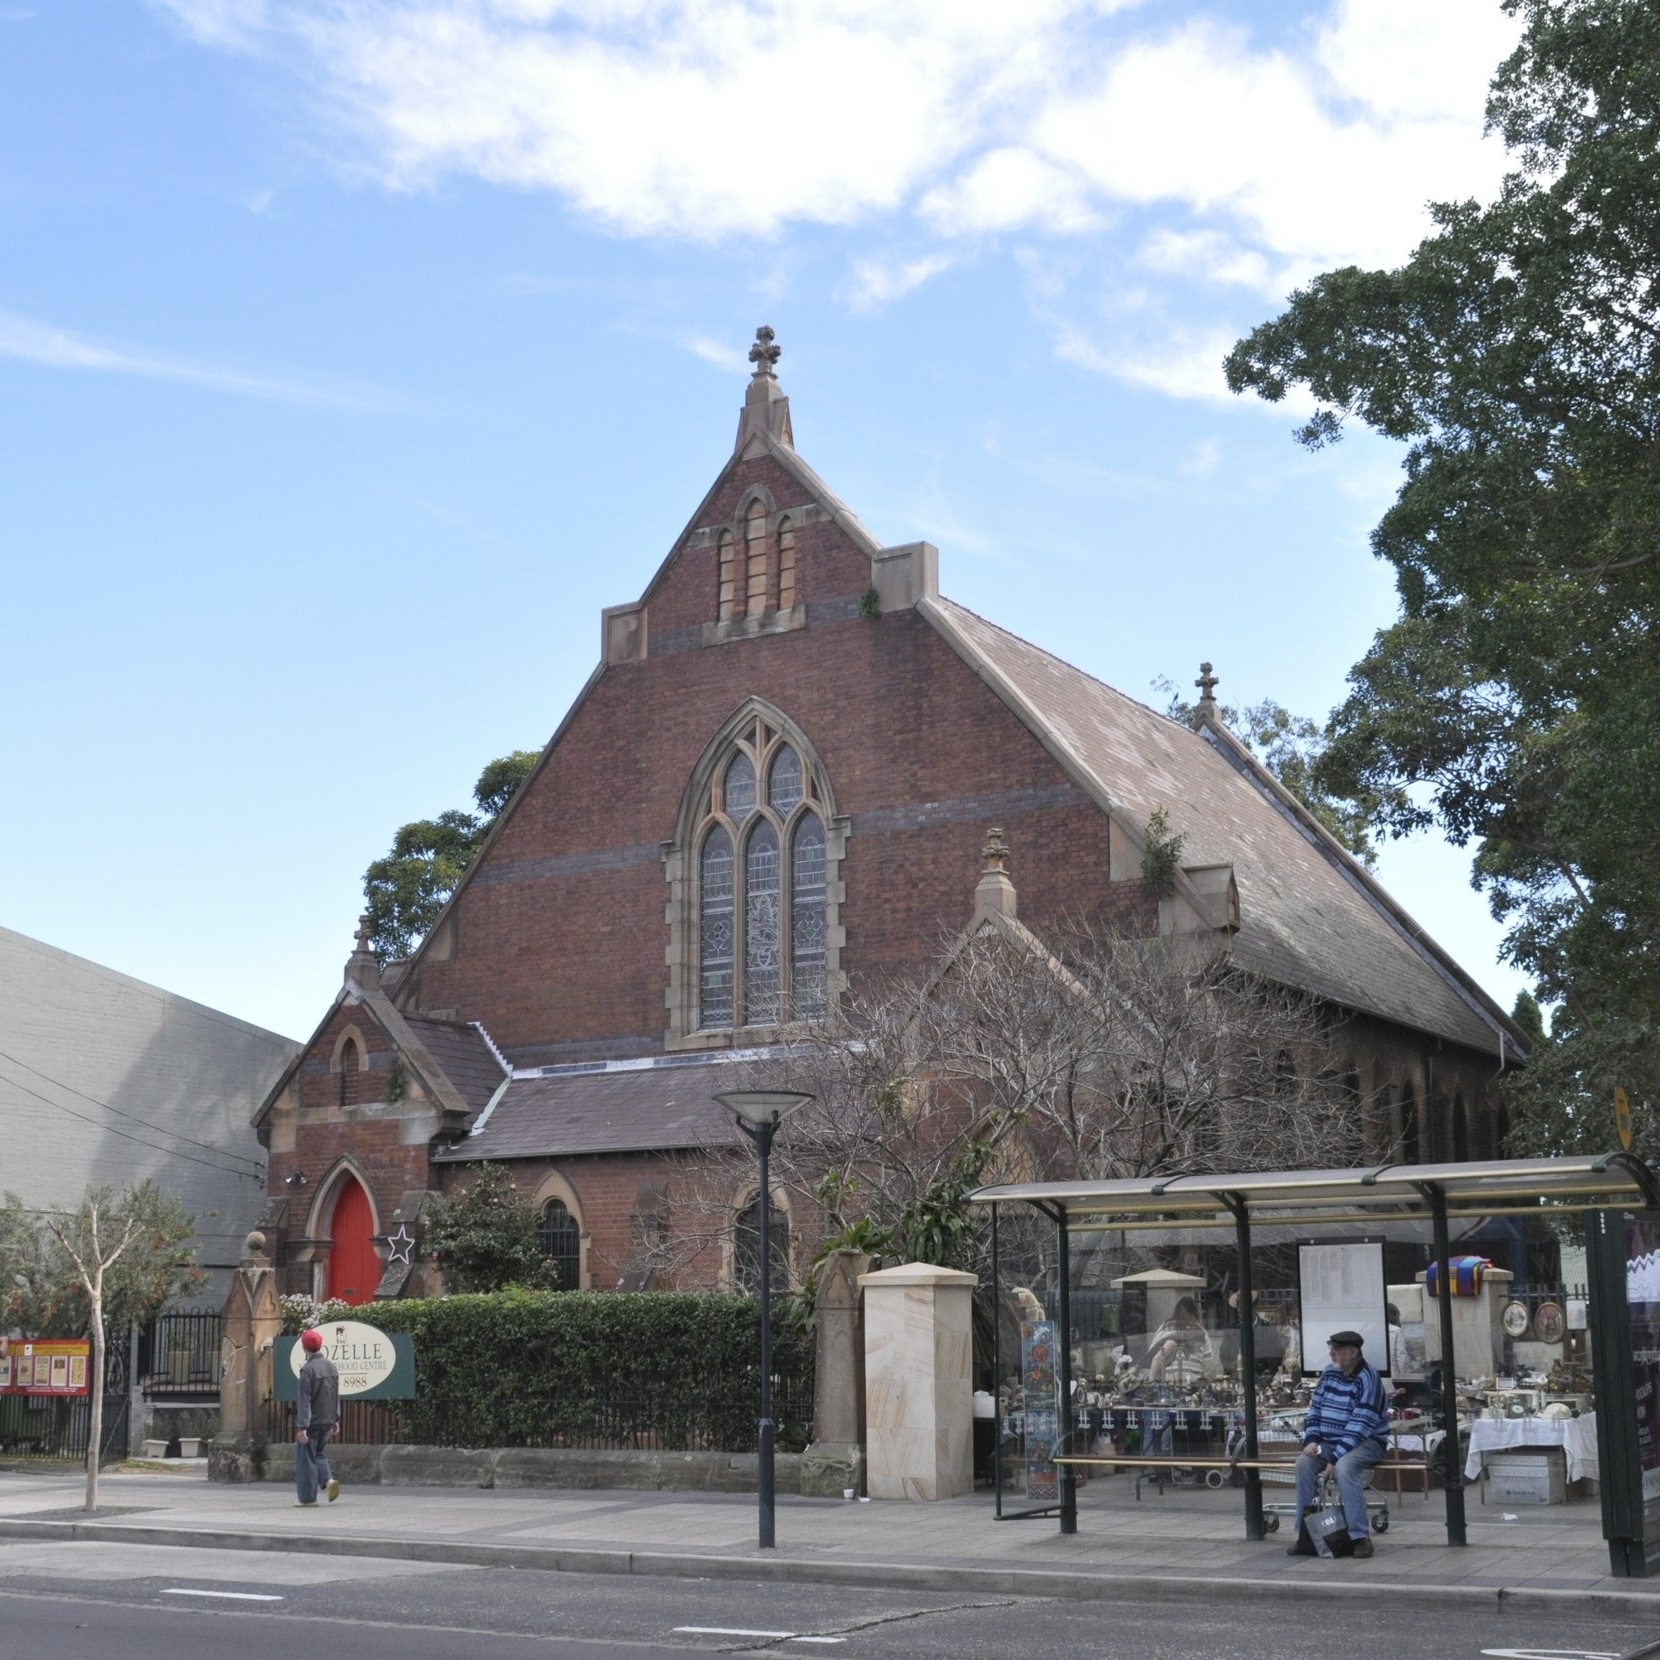 Let's do Sunday - We meet at the beautiful St Paul's Presbyterian church building in Rozelle. Our service is casual, celebratory, reflective and welcoming.10:30am start665A Darling Street, Rozelle